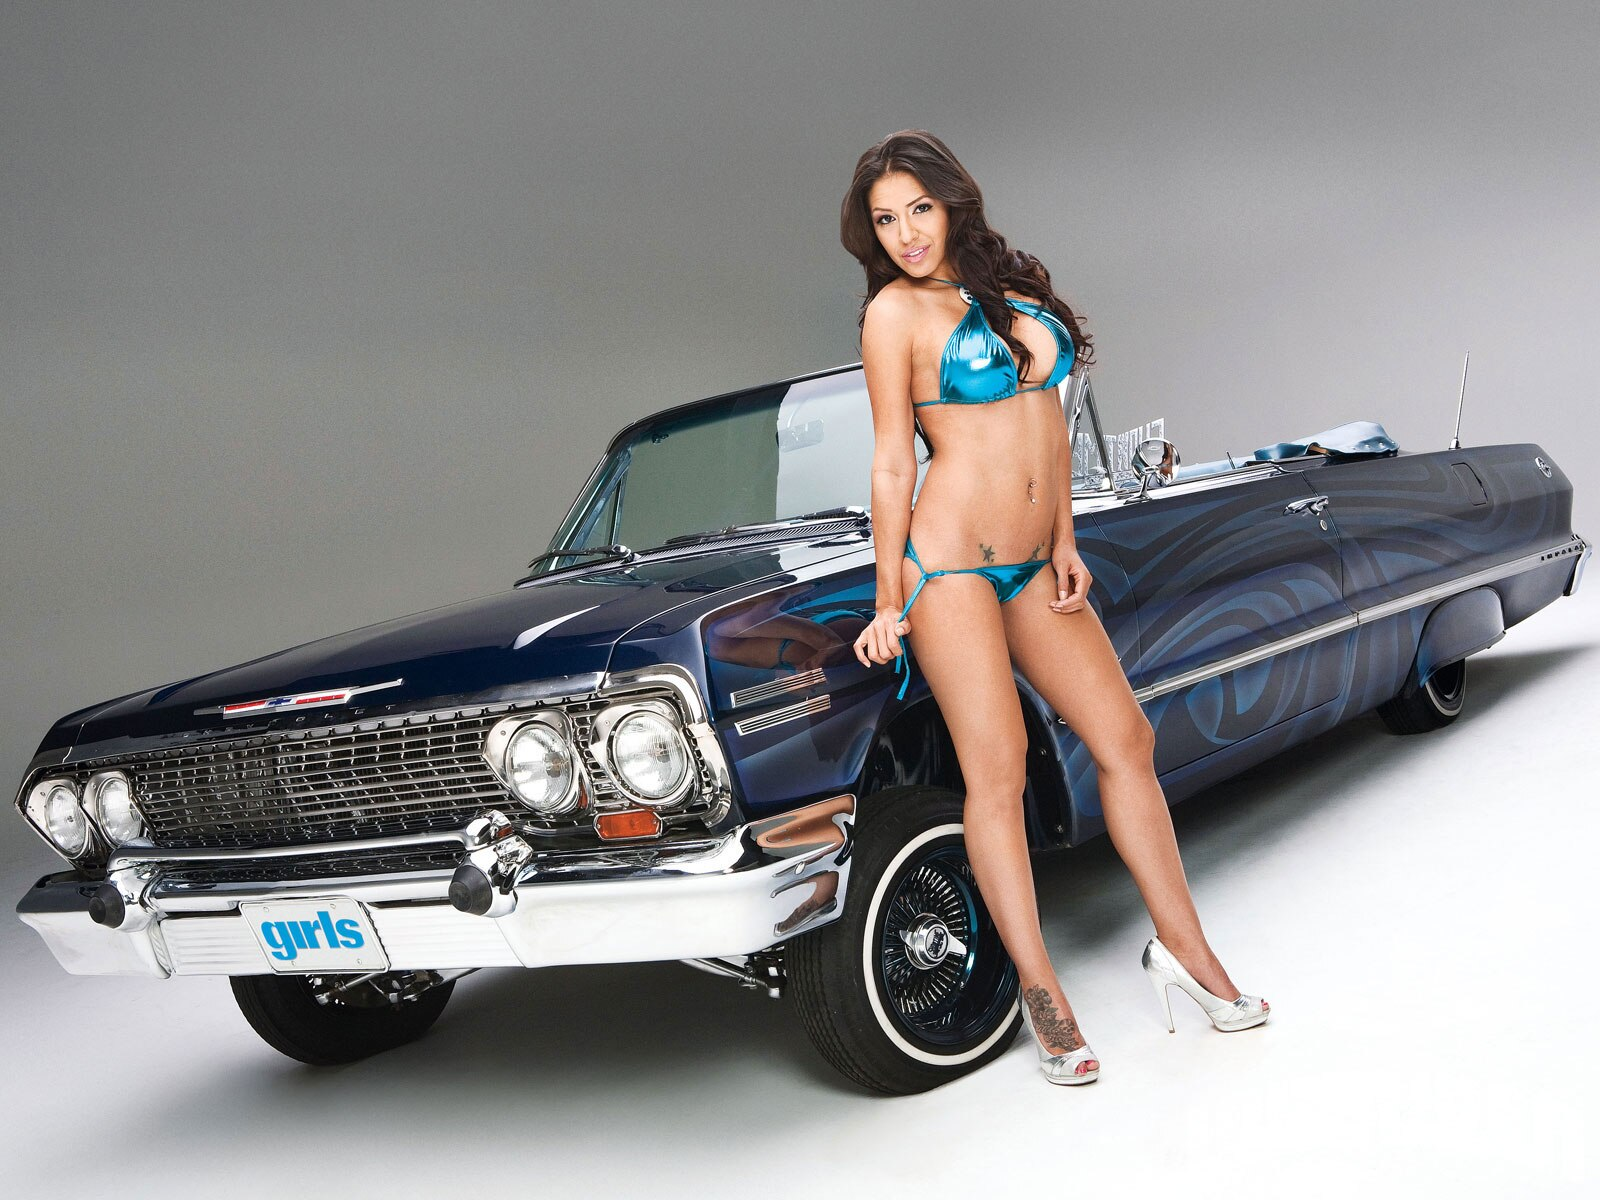 1107-lrms-06-o-samantha-padilla-lowrider-girls-model-2